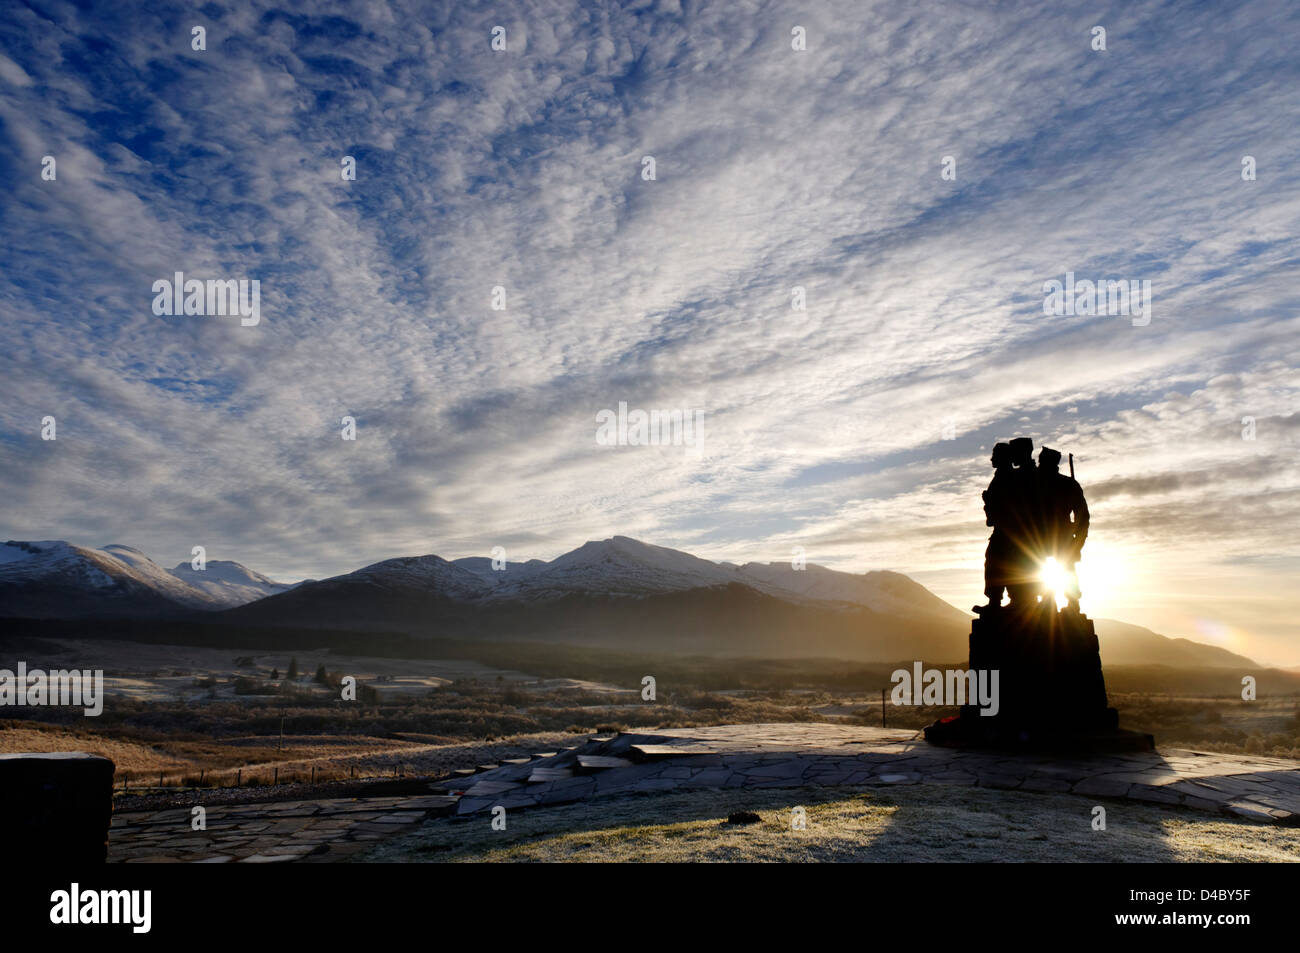 a-dramatic-winter-sunrise-with-the-commando-memorial-at-spean-bridge-D4BY5F.jpg